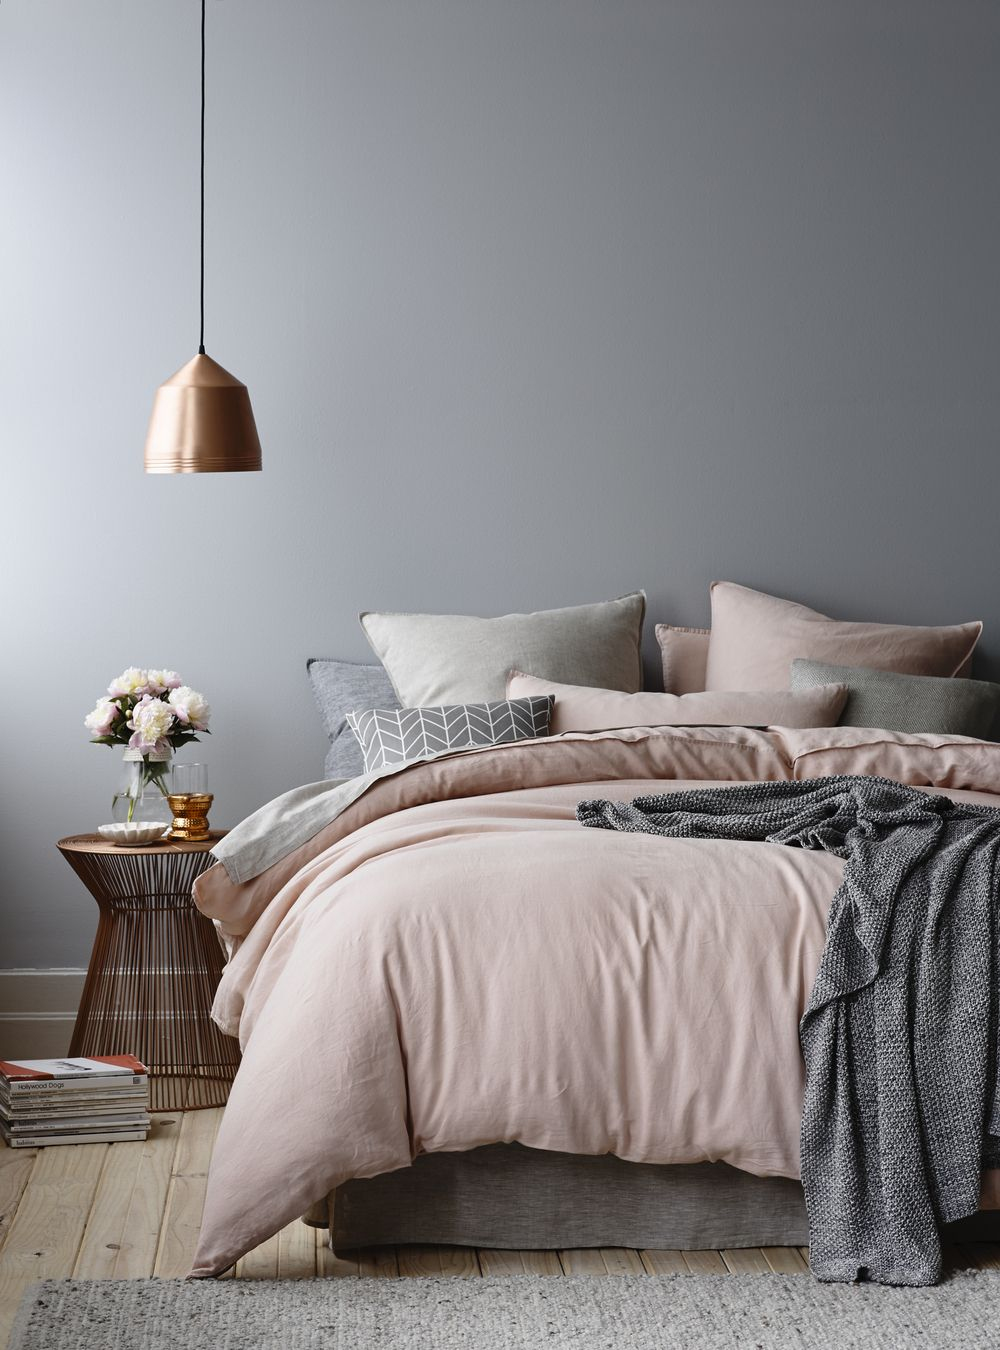 Charmant Cool Bedroom Ideas For Teenage, Kids, Twin, And You   Grey Walls Are The  Perfect Back Drop For Dusky Pink Furnishings. Just Add Some Copper  Accesspries For ...